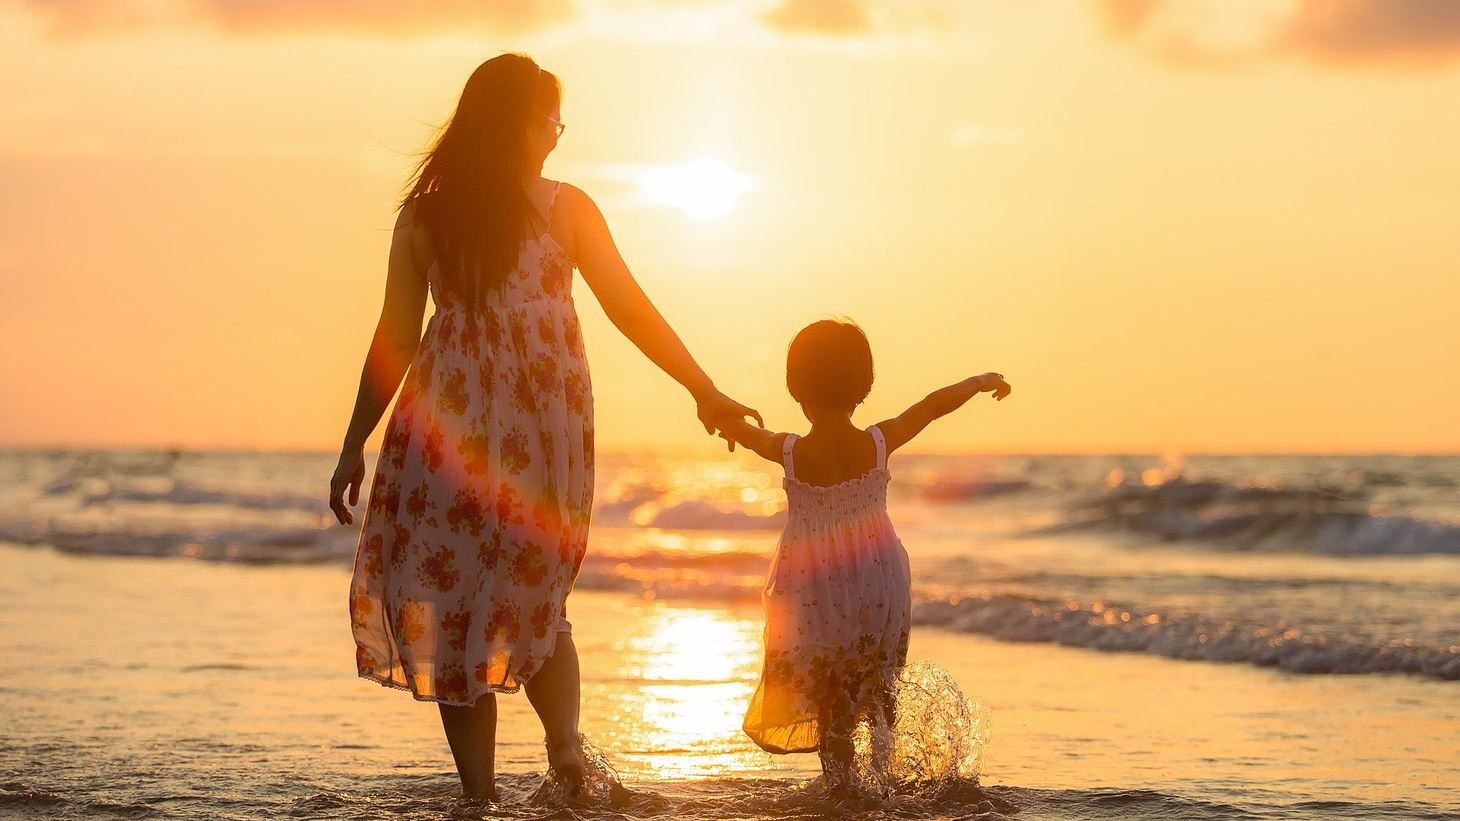 A mother and daughter walking on the beach.